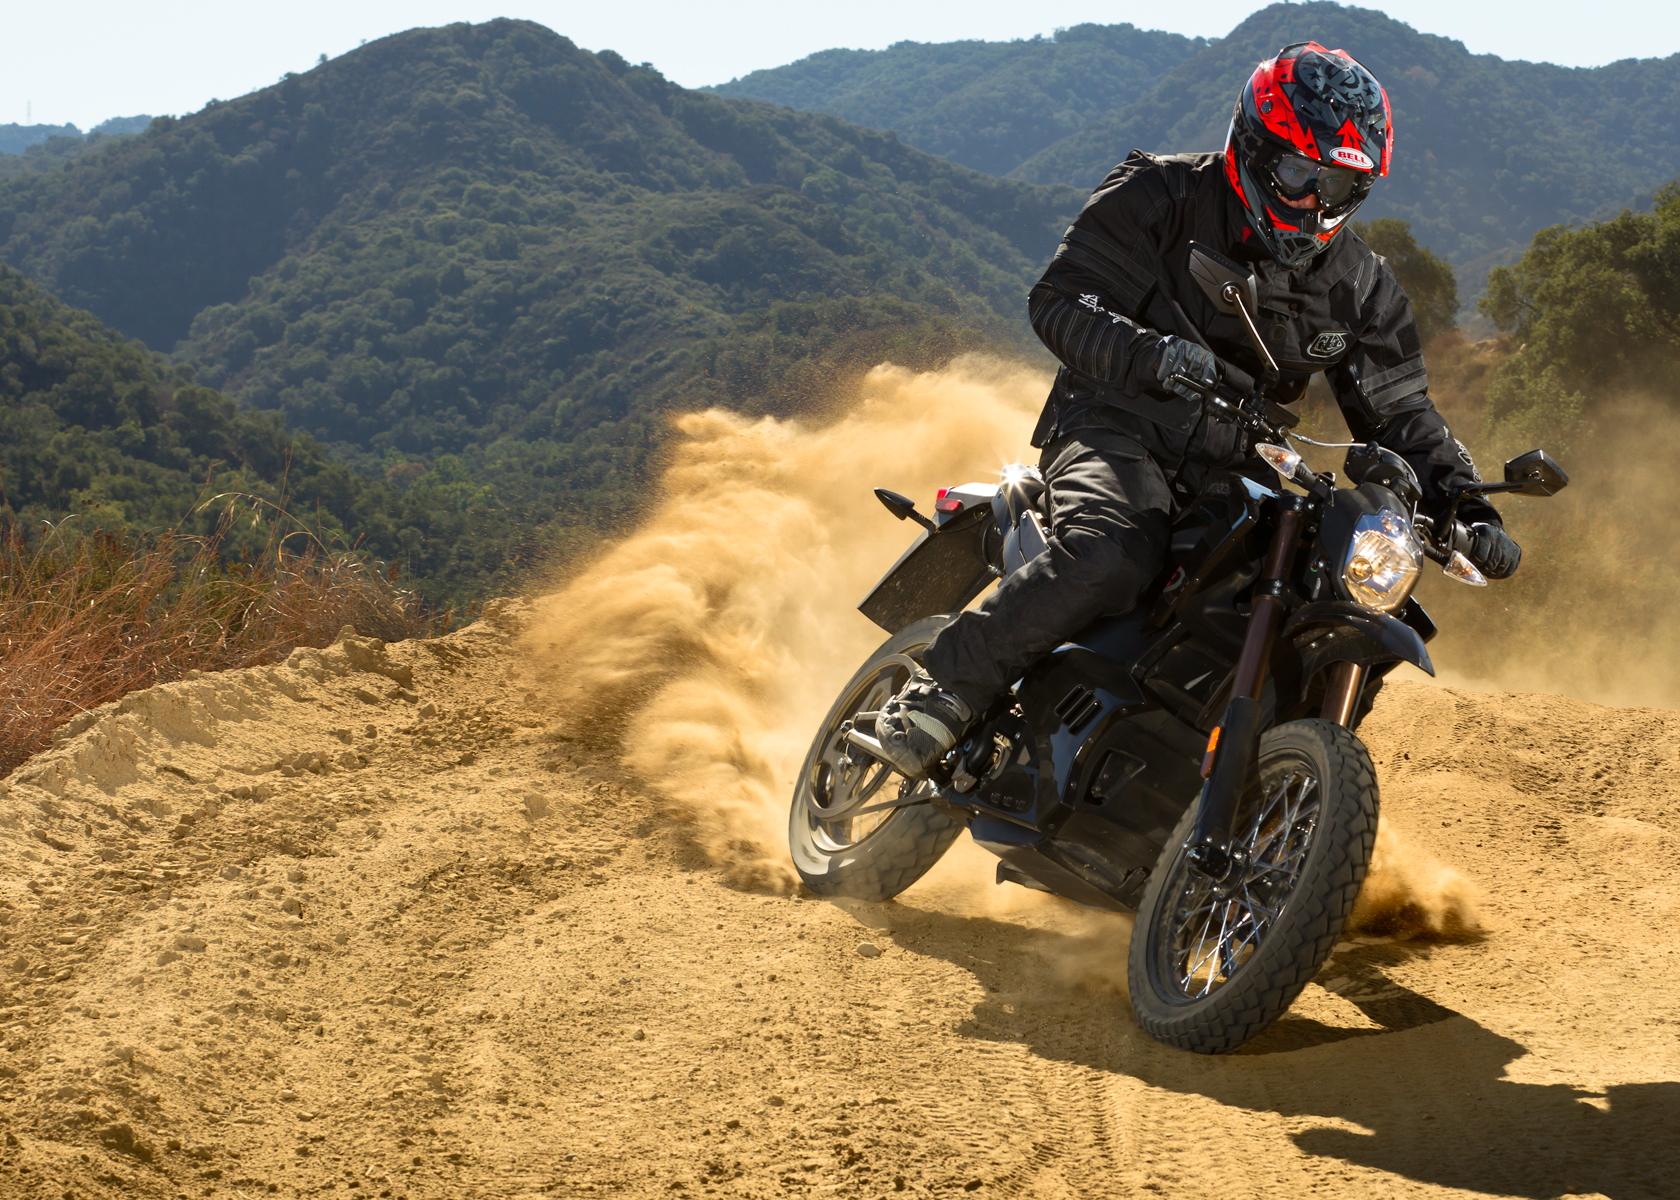 2012 Zero DS Electric Motorcycle: On a Dirt Road